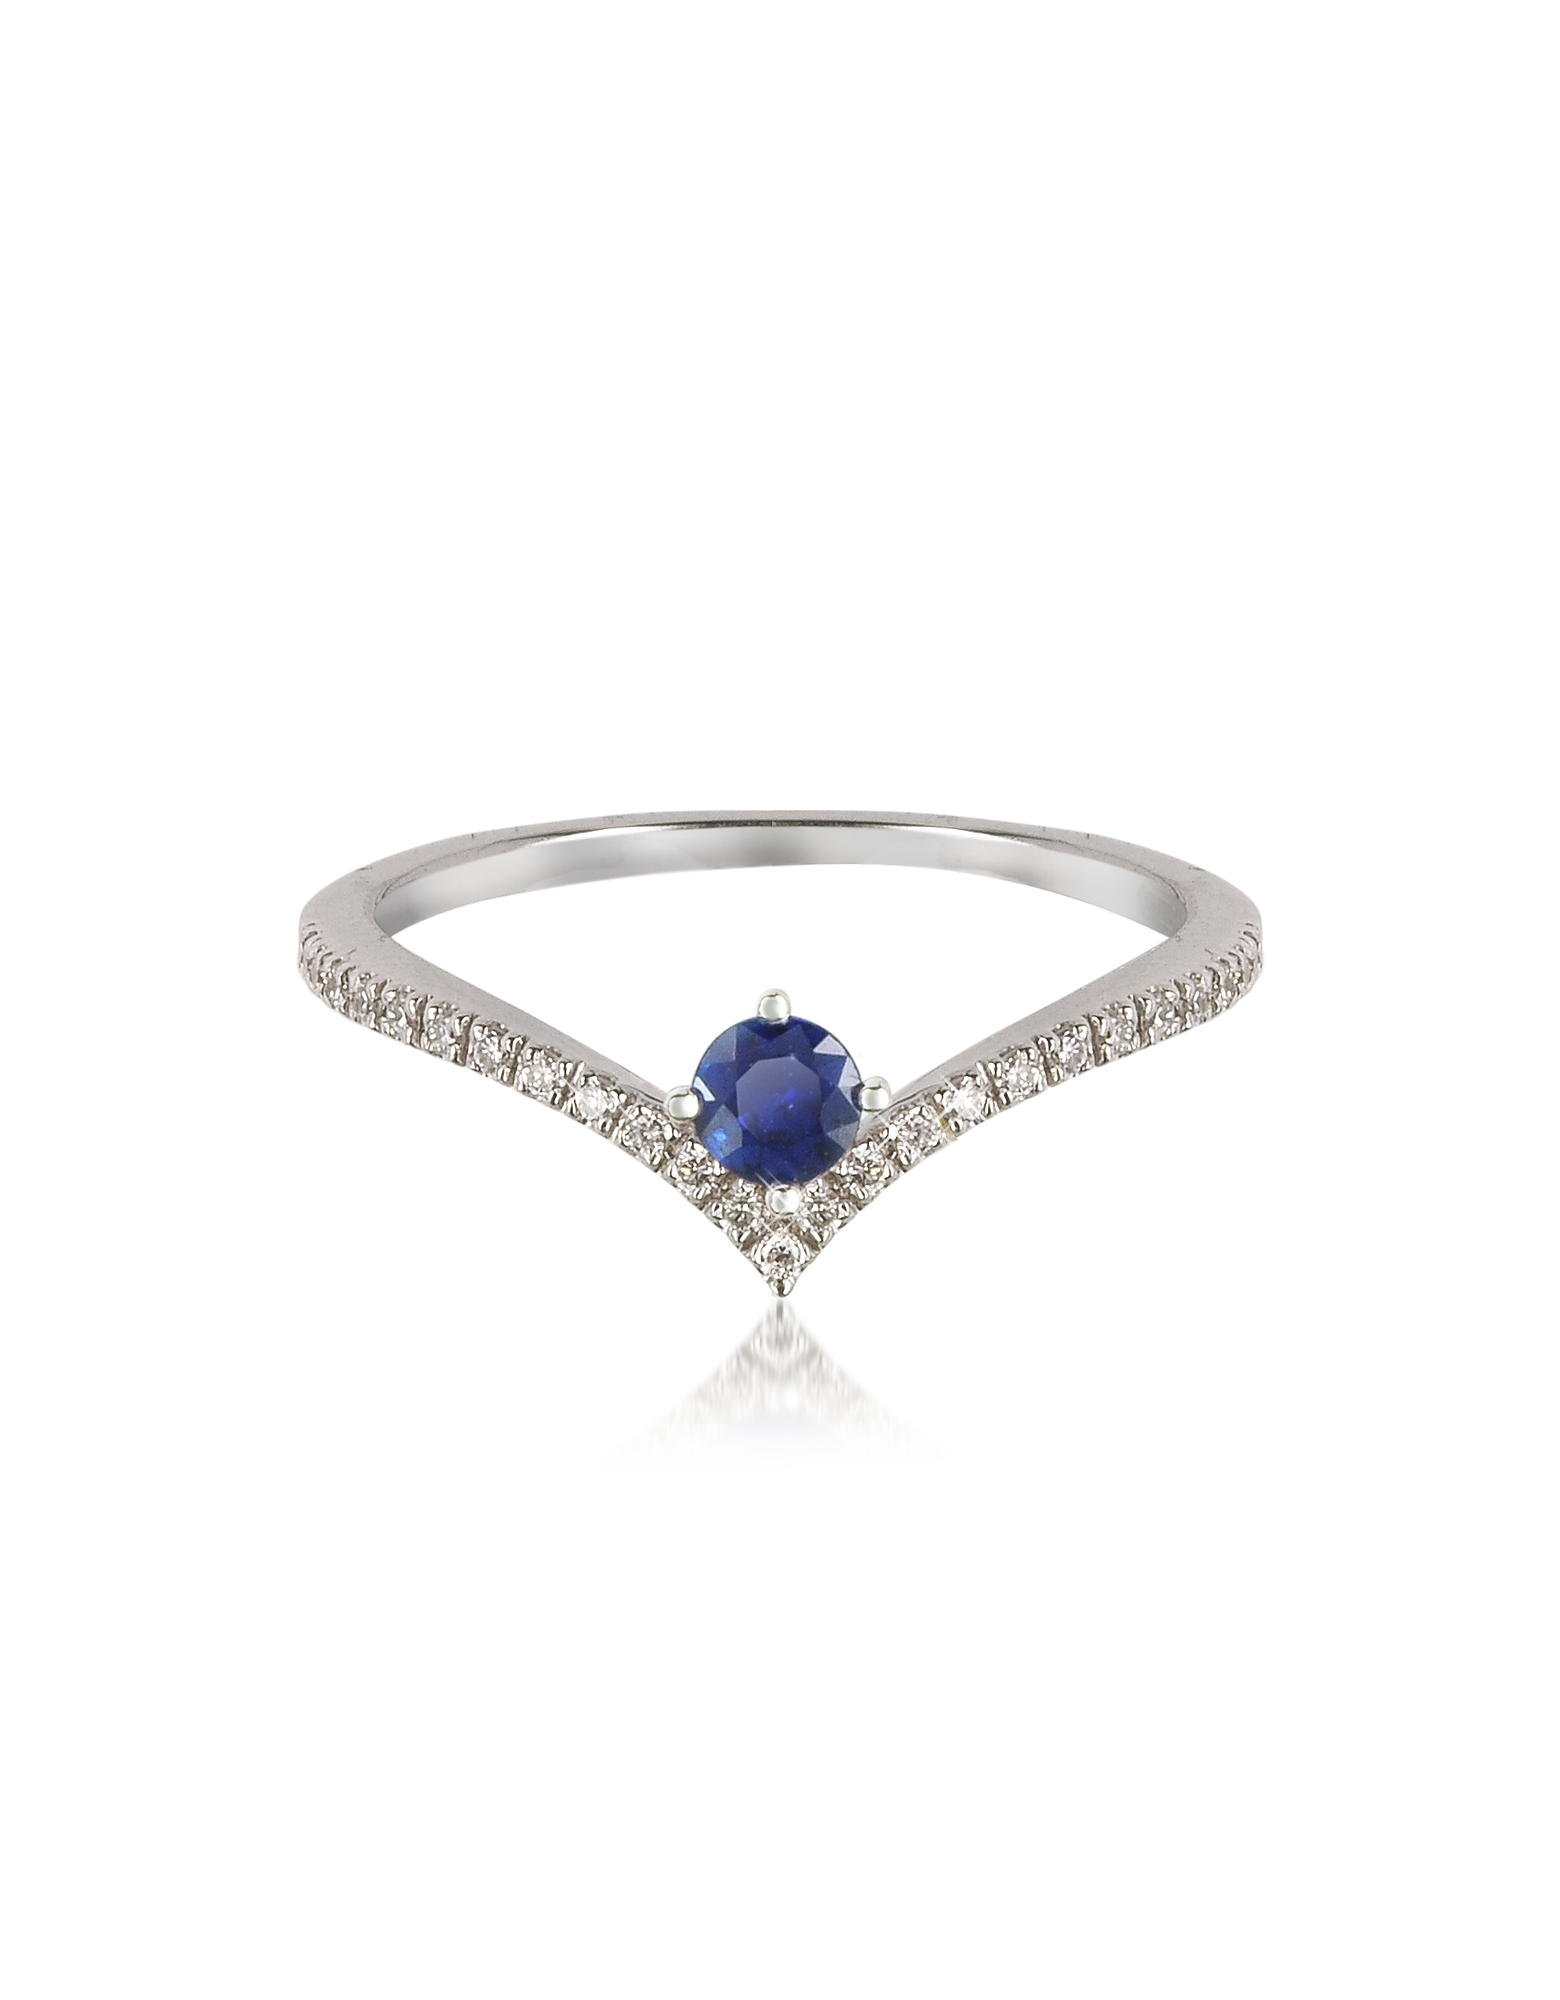 Forzieri Rings, V-Shaped Diamonds Band Ring with Natural Round Sapphire